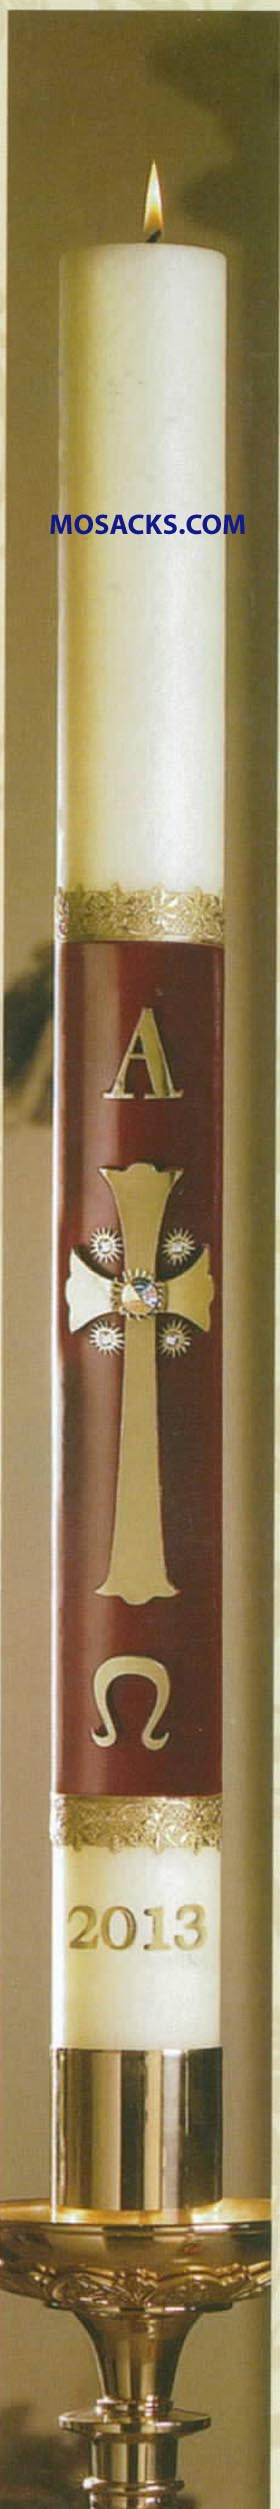 No 9 Majesty Paschal Candle #10961